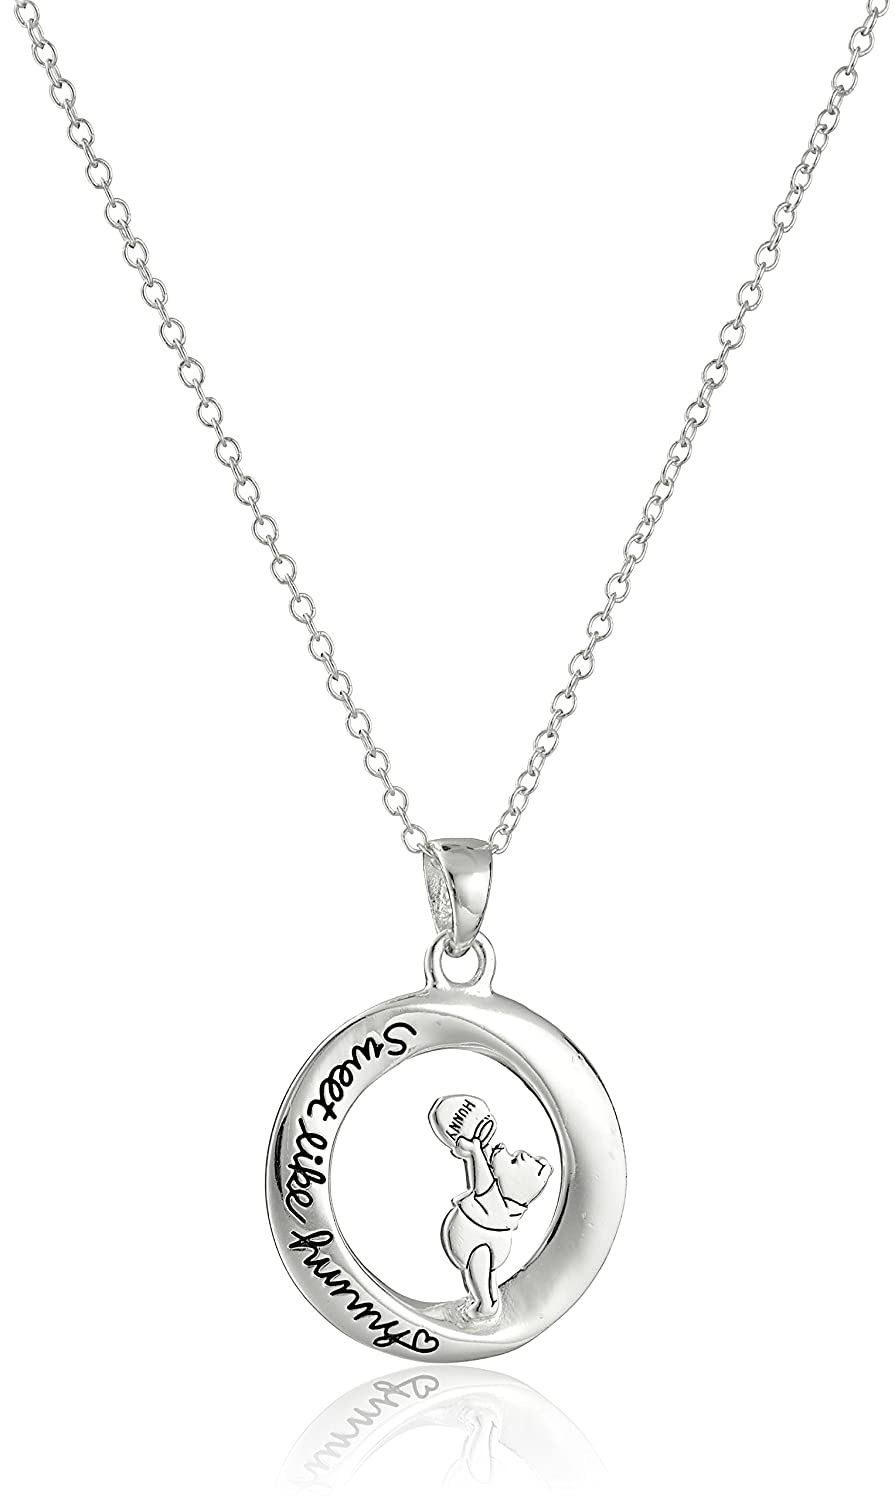 Disney Sterling Silver Winnie The PoohSweet Like Hunny Pendant Necklace, 18 18 Disney Jewelry D40230